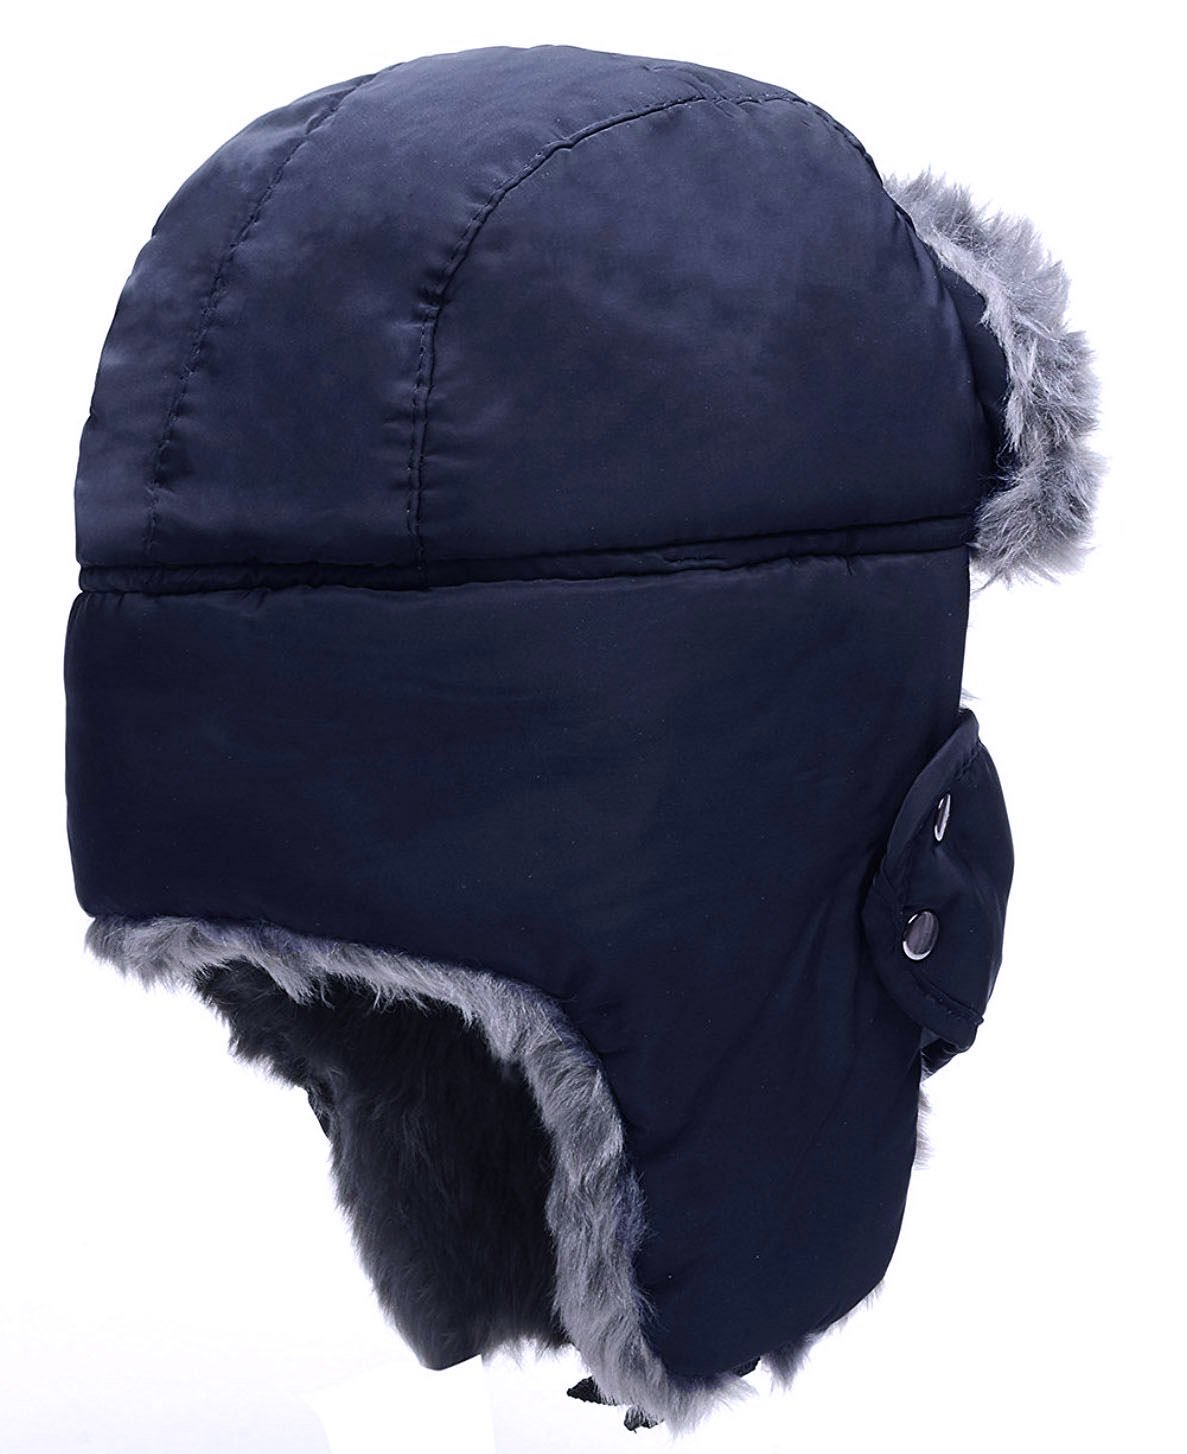 HindaWi Winter Hat Windproof Mask Ushanka Trapper Hat for Men and Women Navy